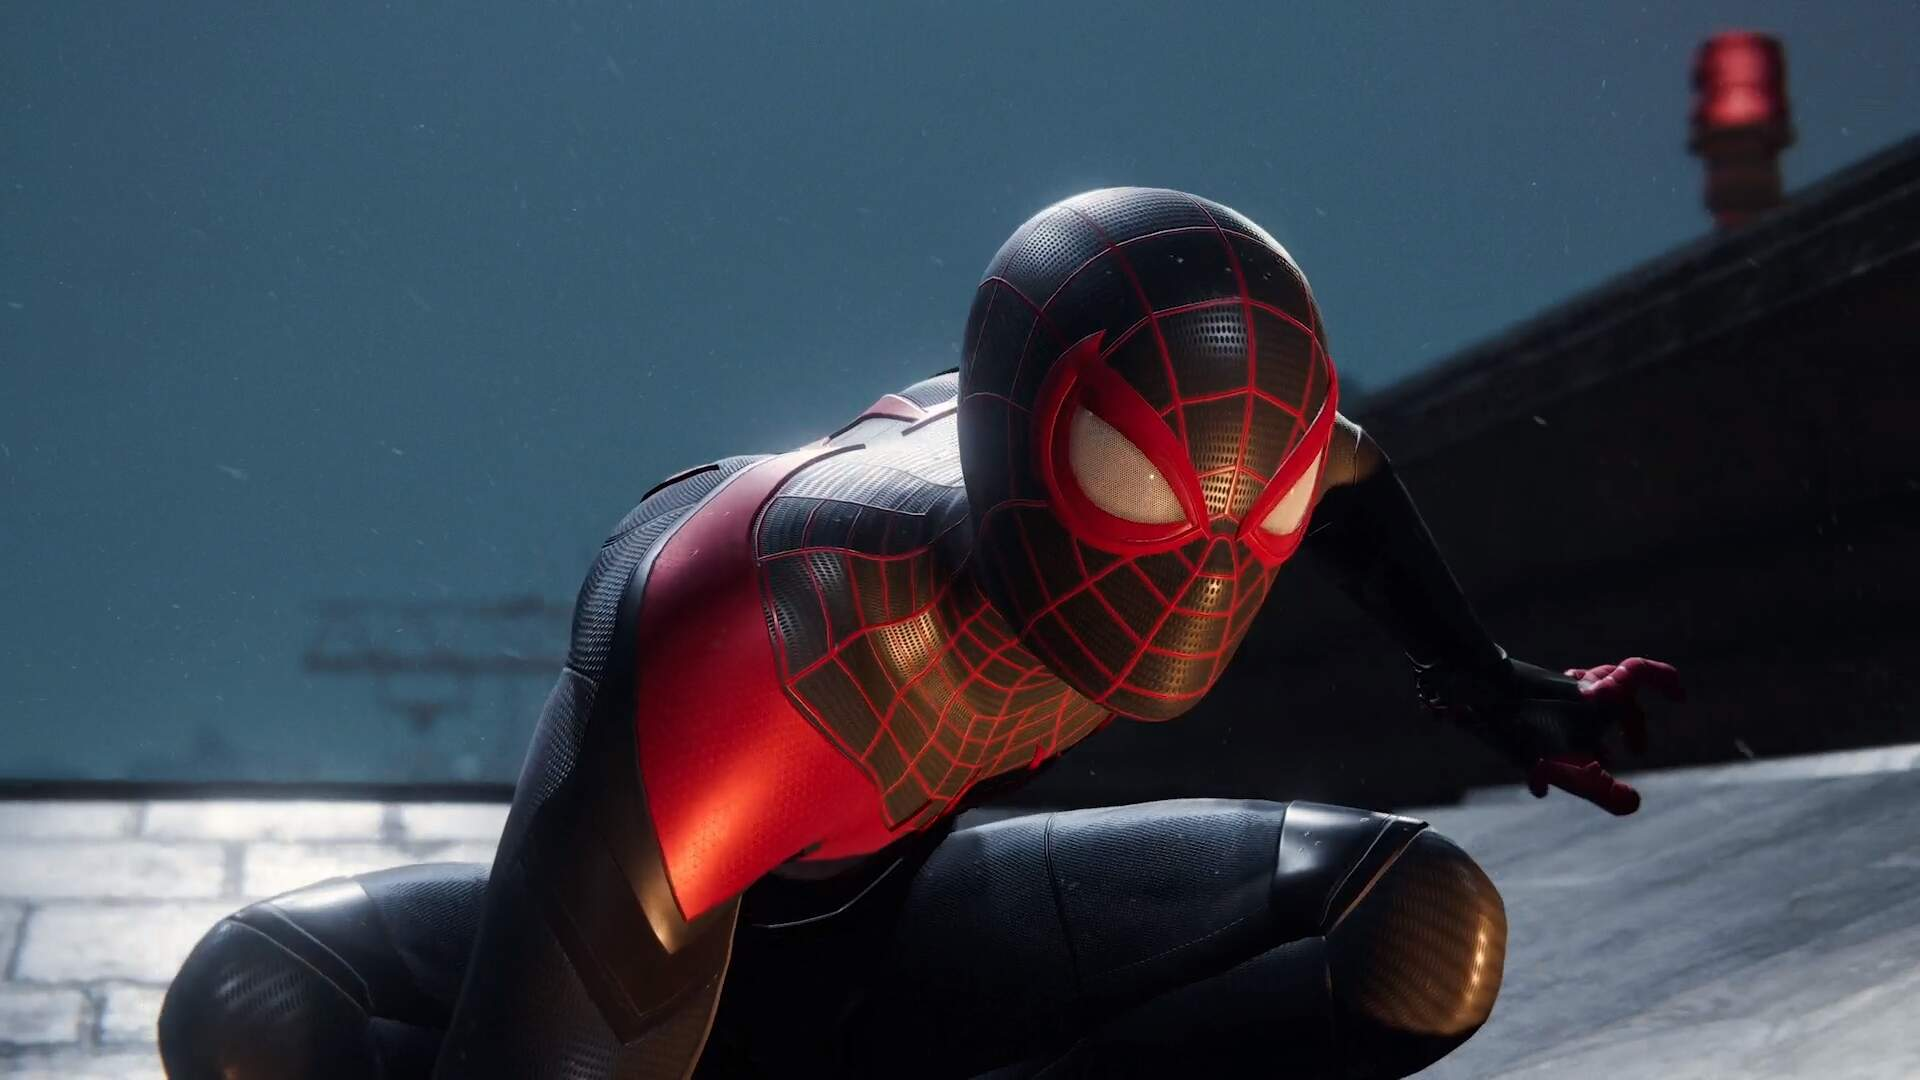 The First Boss Fight in Spider-Man: Miles Morales Sees Both Spideys Teaming Up